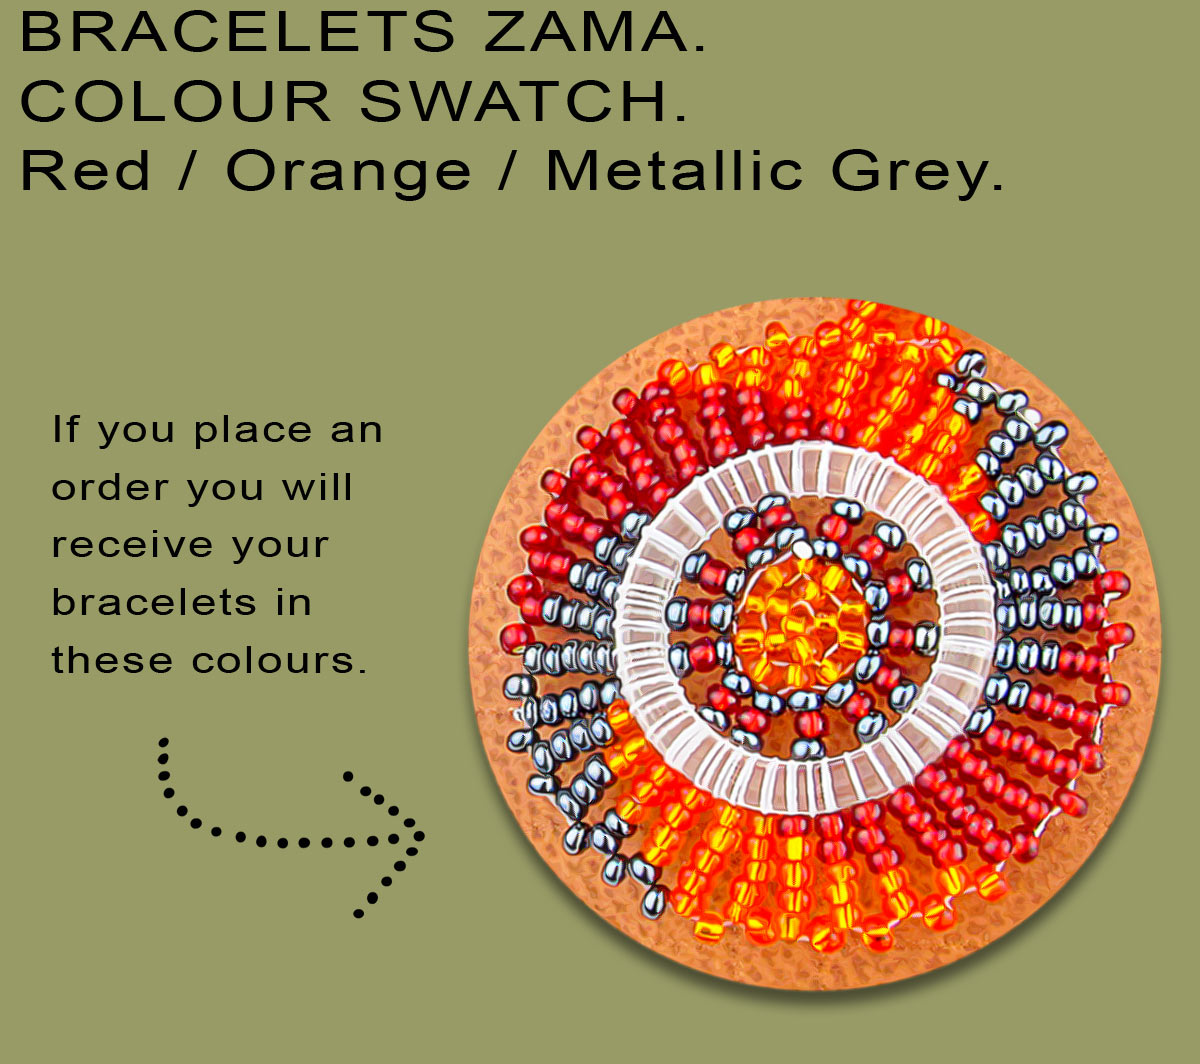 African Beaded Bracelets Zama Red Orange Metallic